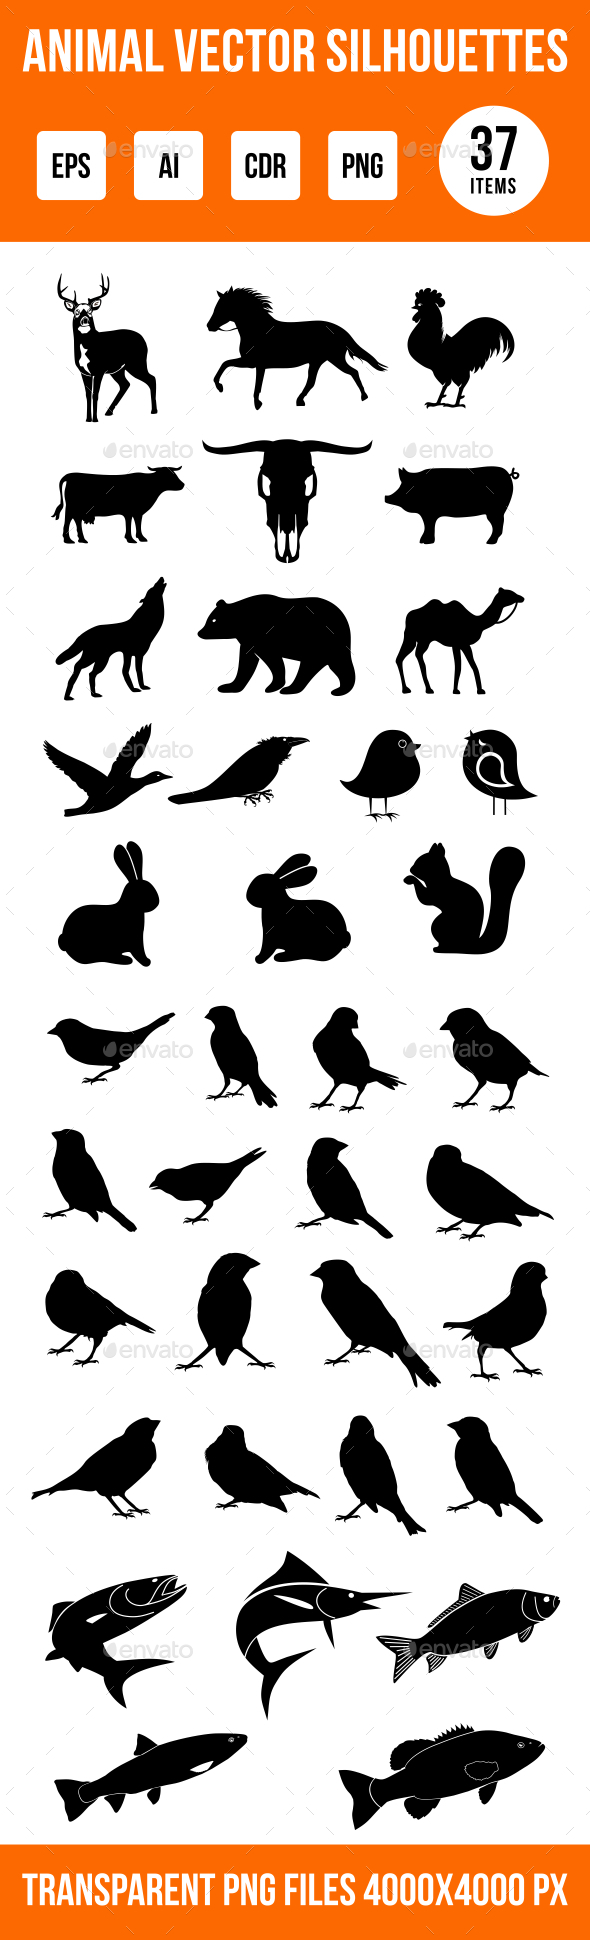 GraphicRiver Animal Silhouettes 9342642